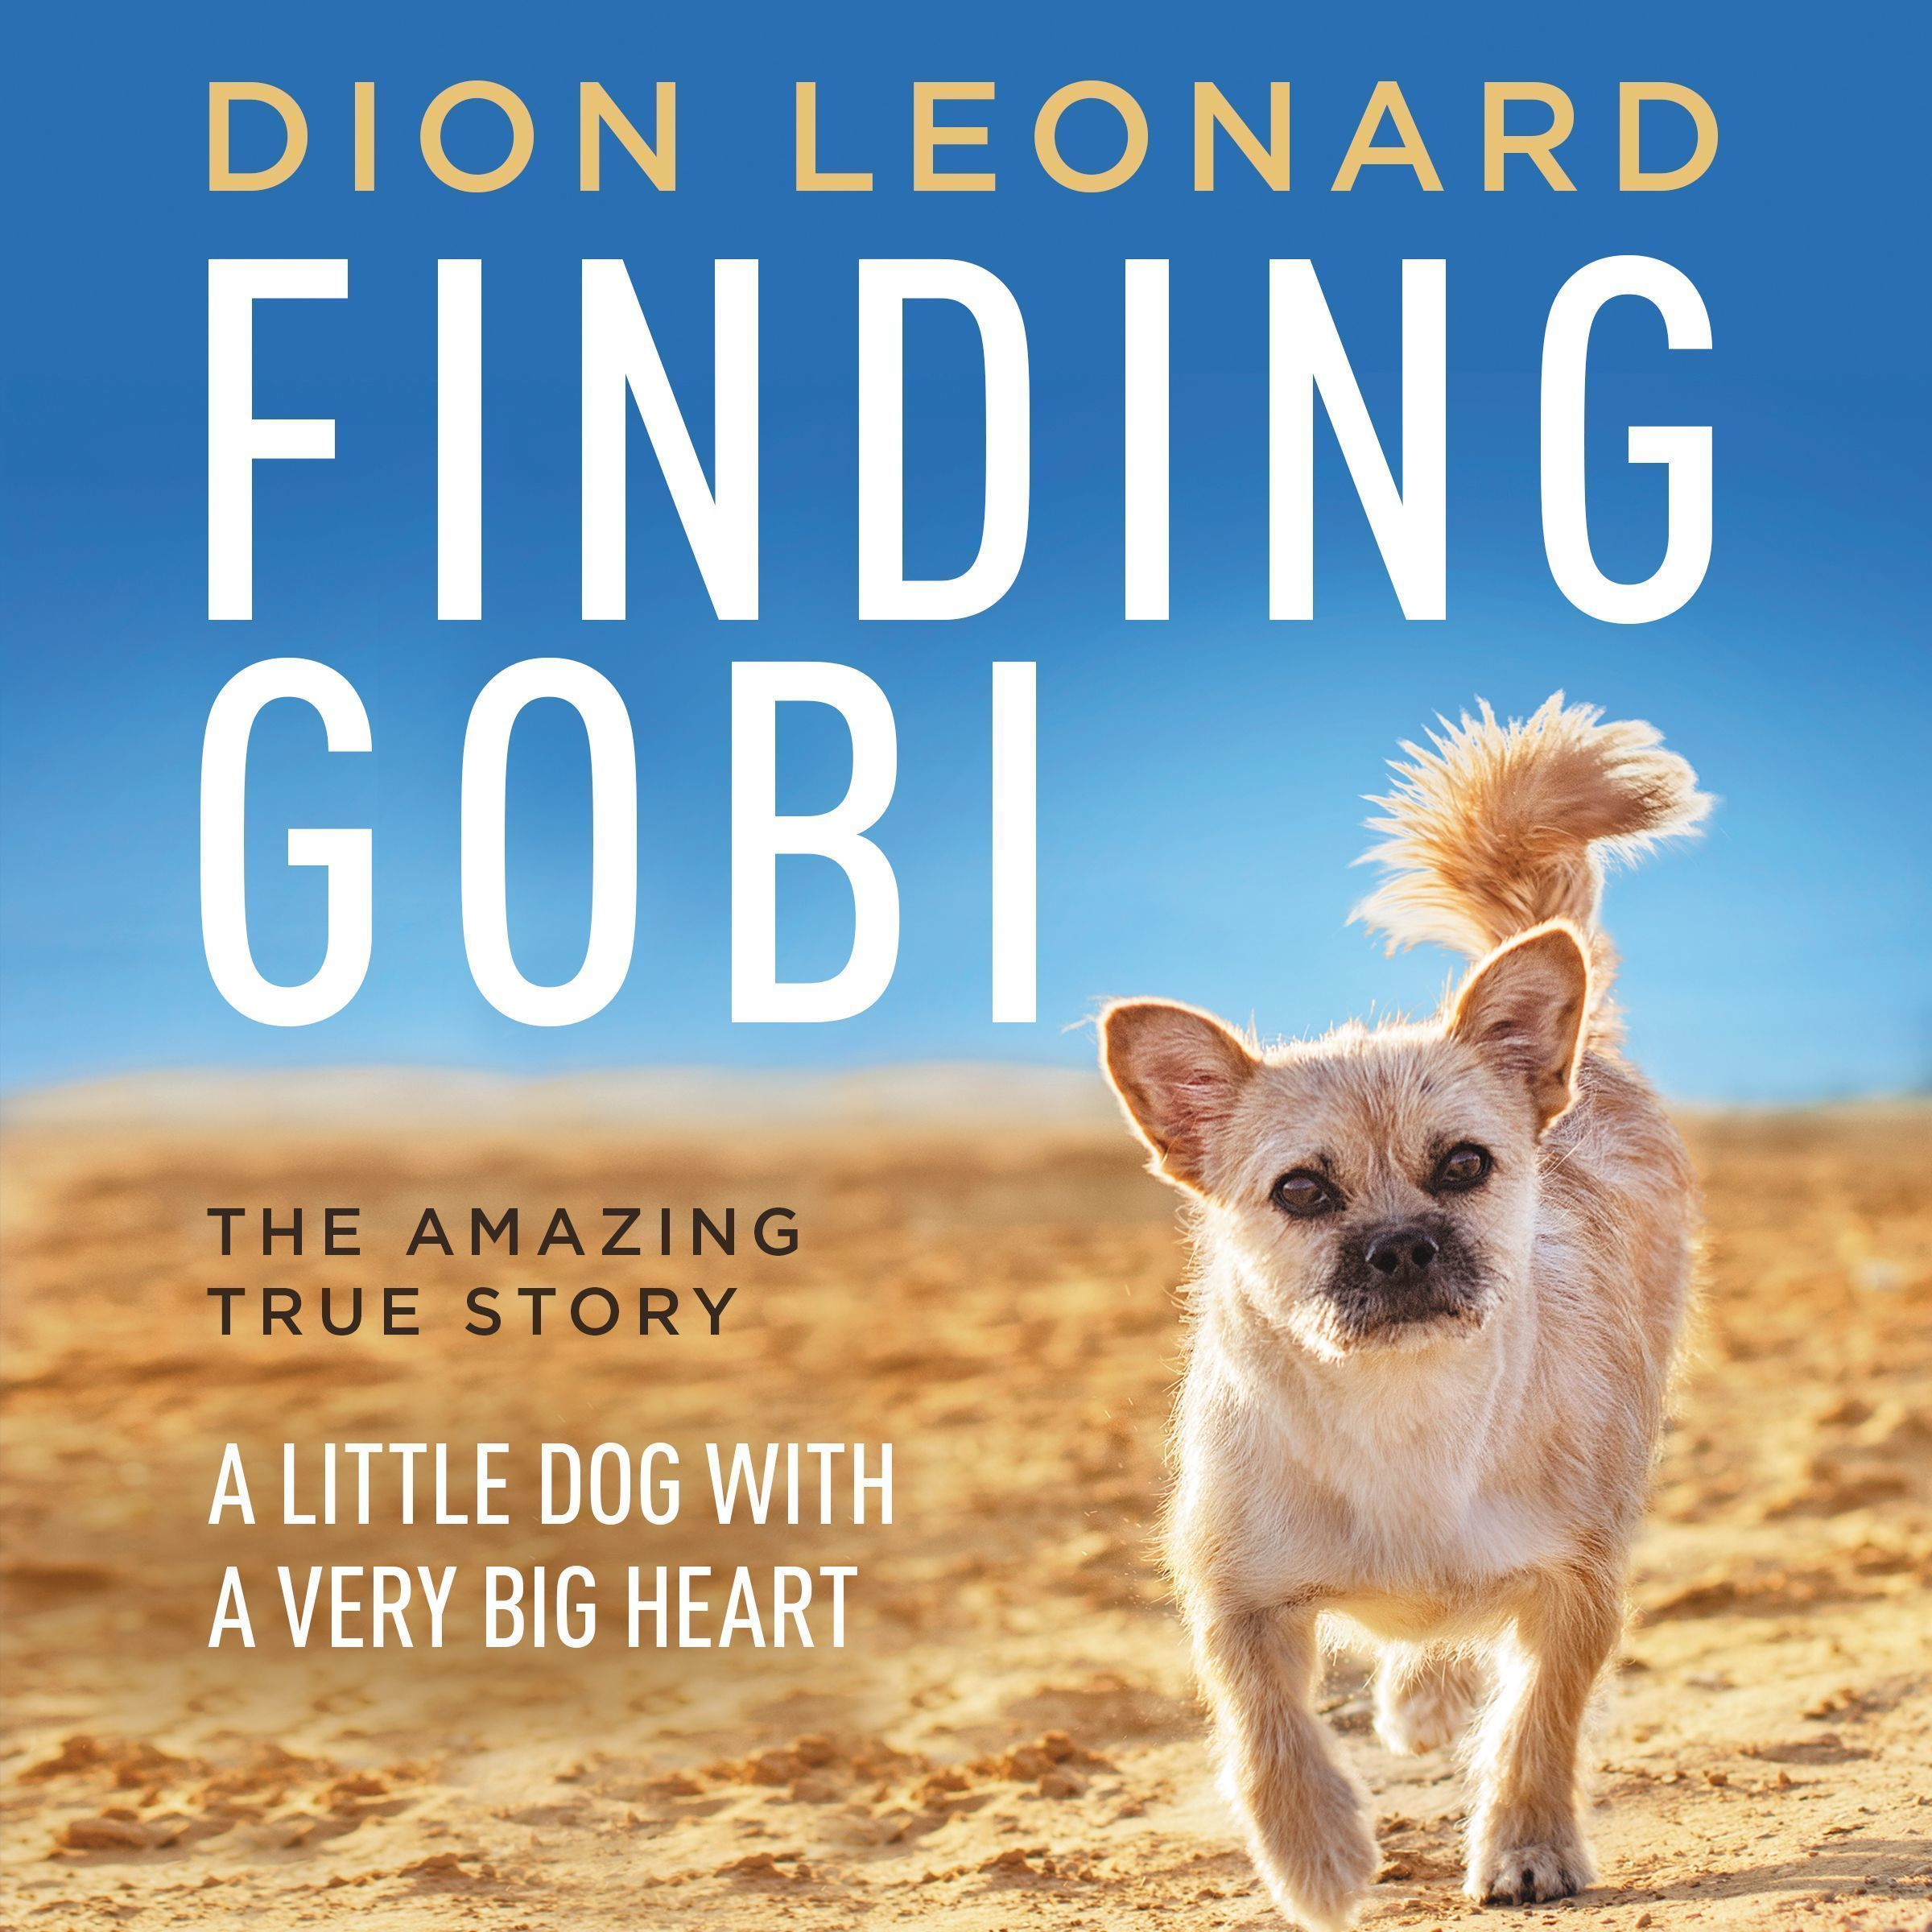 Printable Finding Gobi: A Little Dog with a Very Big Heart Audiobook Cover Art